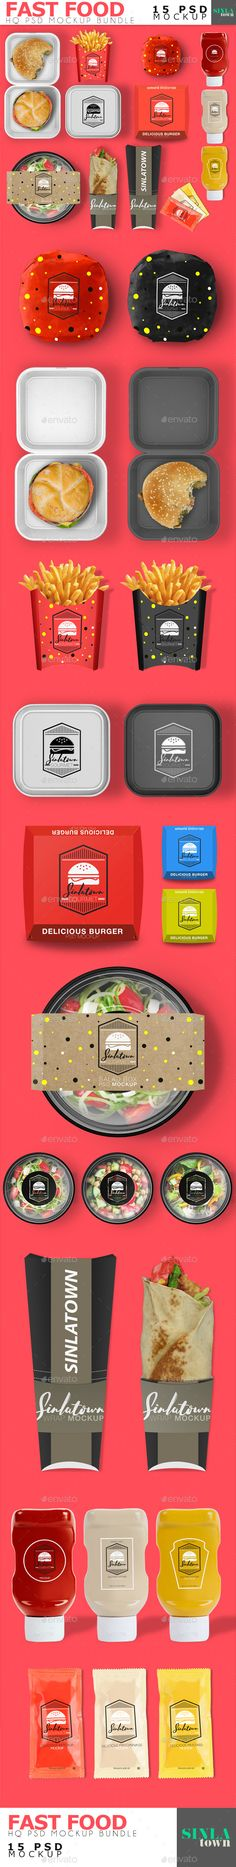 Fast Food Product Mockup #Bundle - Product #Mock-Ups #Graphics Download here: https://graphicriver.net/item/fast-food-product-mockup-bundle/20038737?ref=alena994